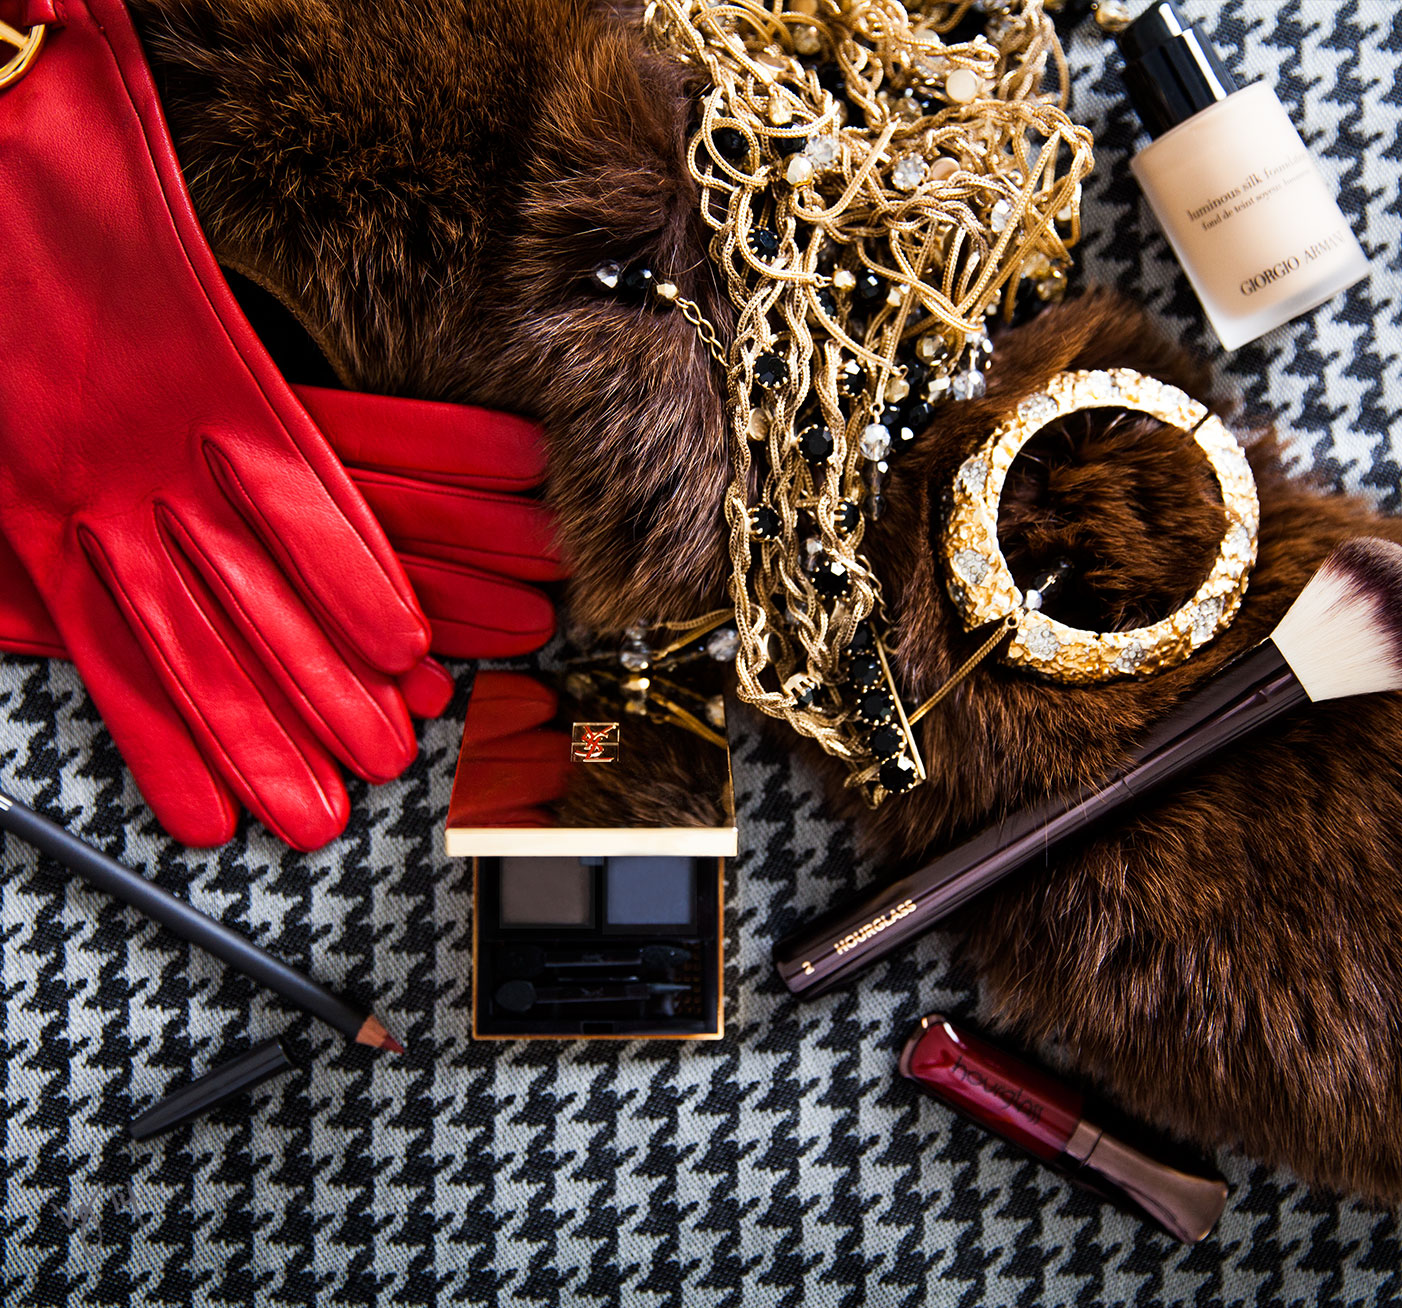 THE SHOPPING LIST FOR FALL MAKEUP: A red carpet makeup artist curates a necessary September cosmetic bag makeover    #VioletGrey, The Industry's Beauty Edit